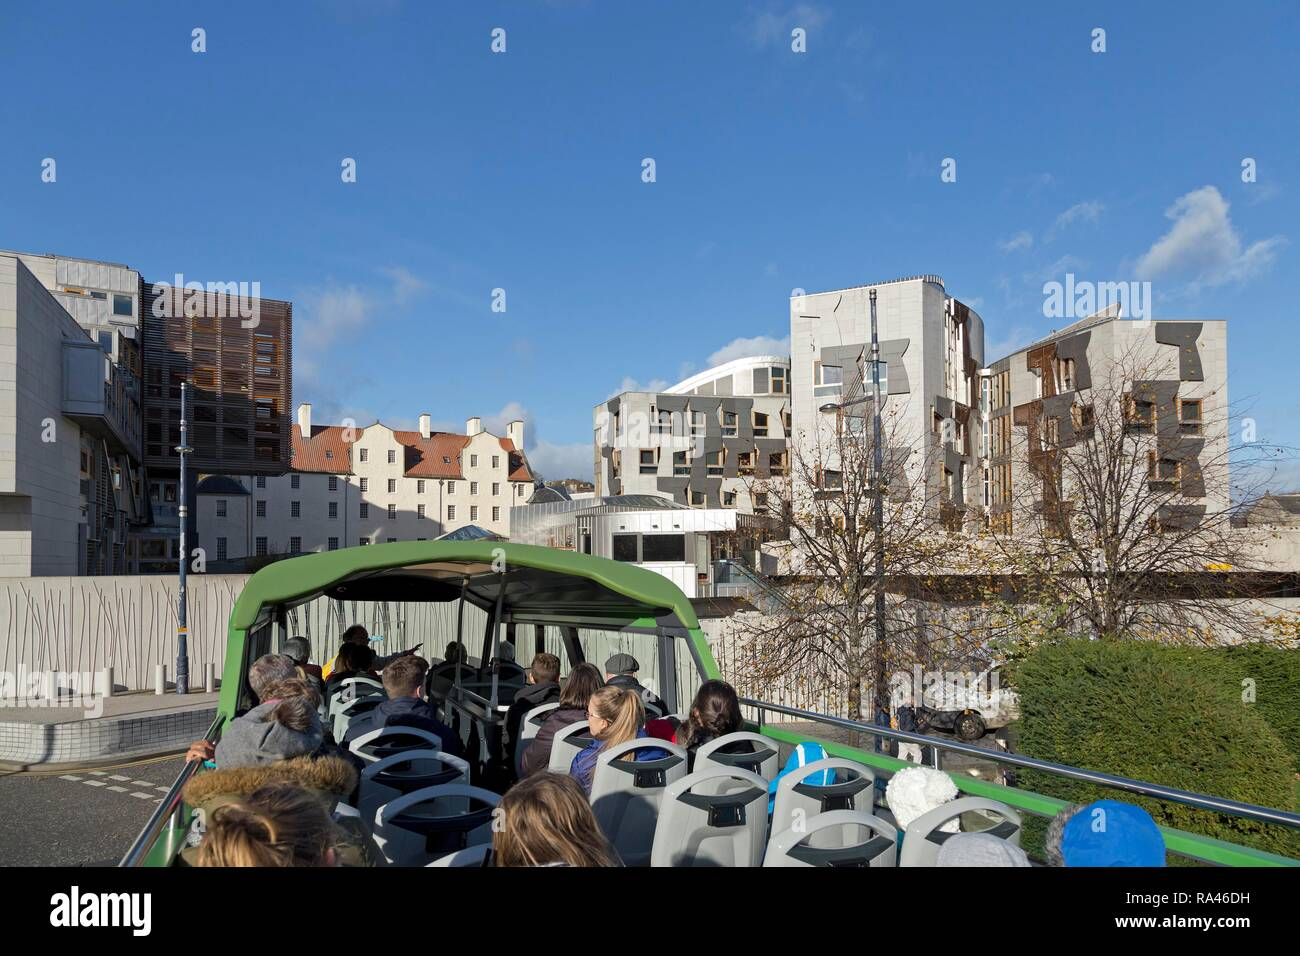 Holyrood, Scottish Parliament, from Sightseeing-Bus, Edinburgh, Scotland, Great Britain - Stock Image